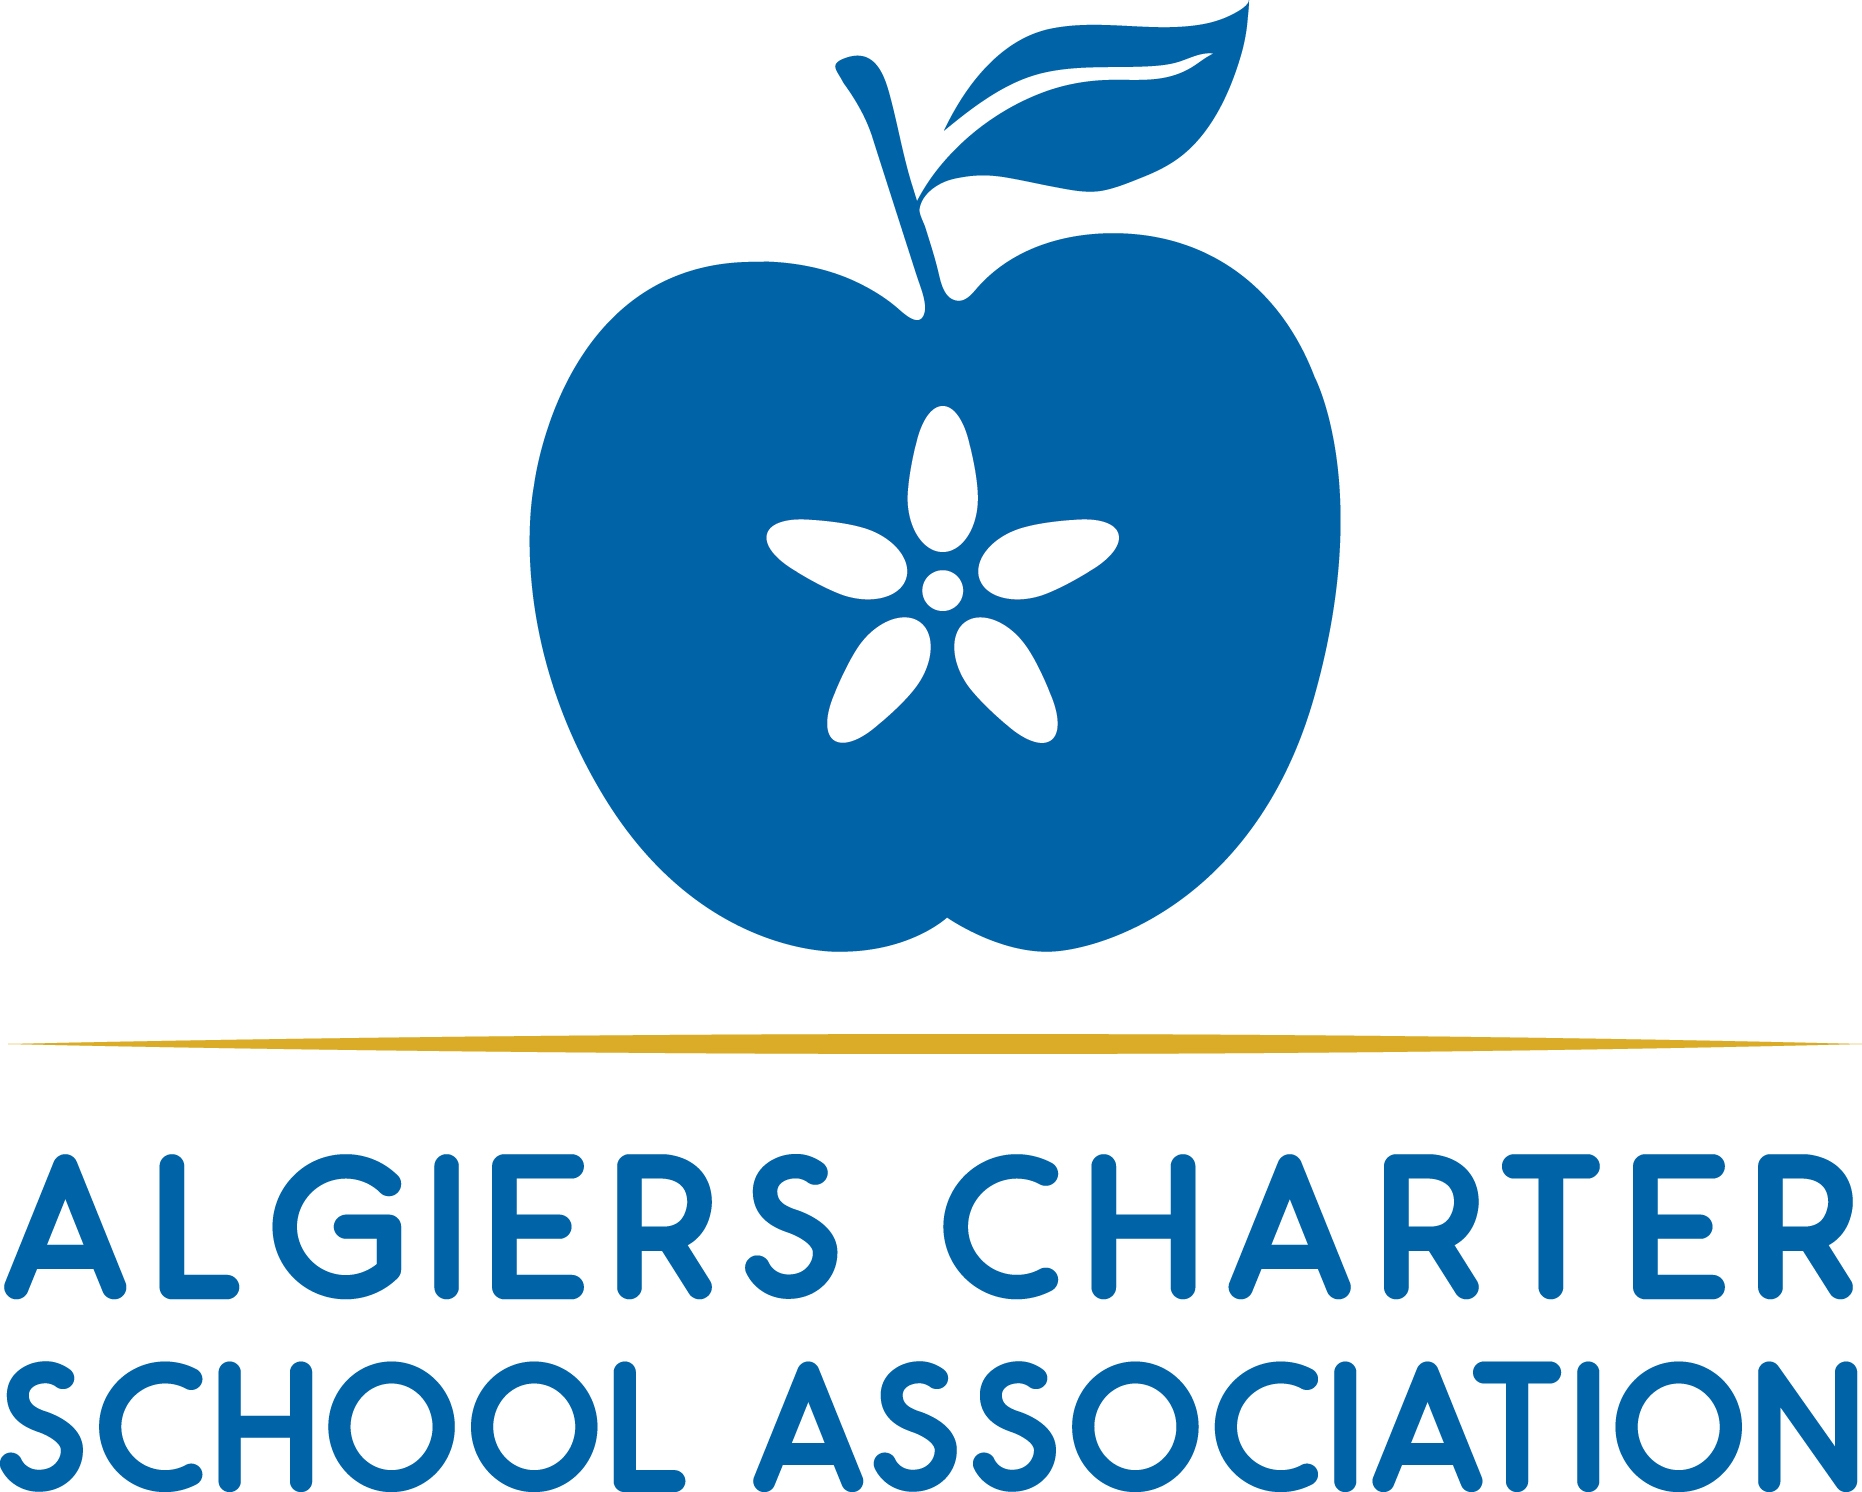 Algiers Charter School Association logo